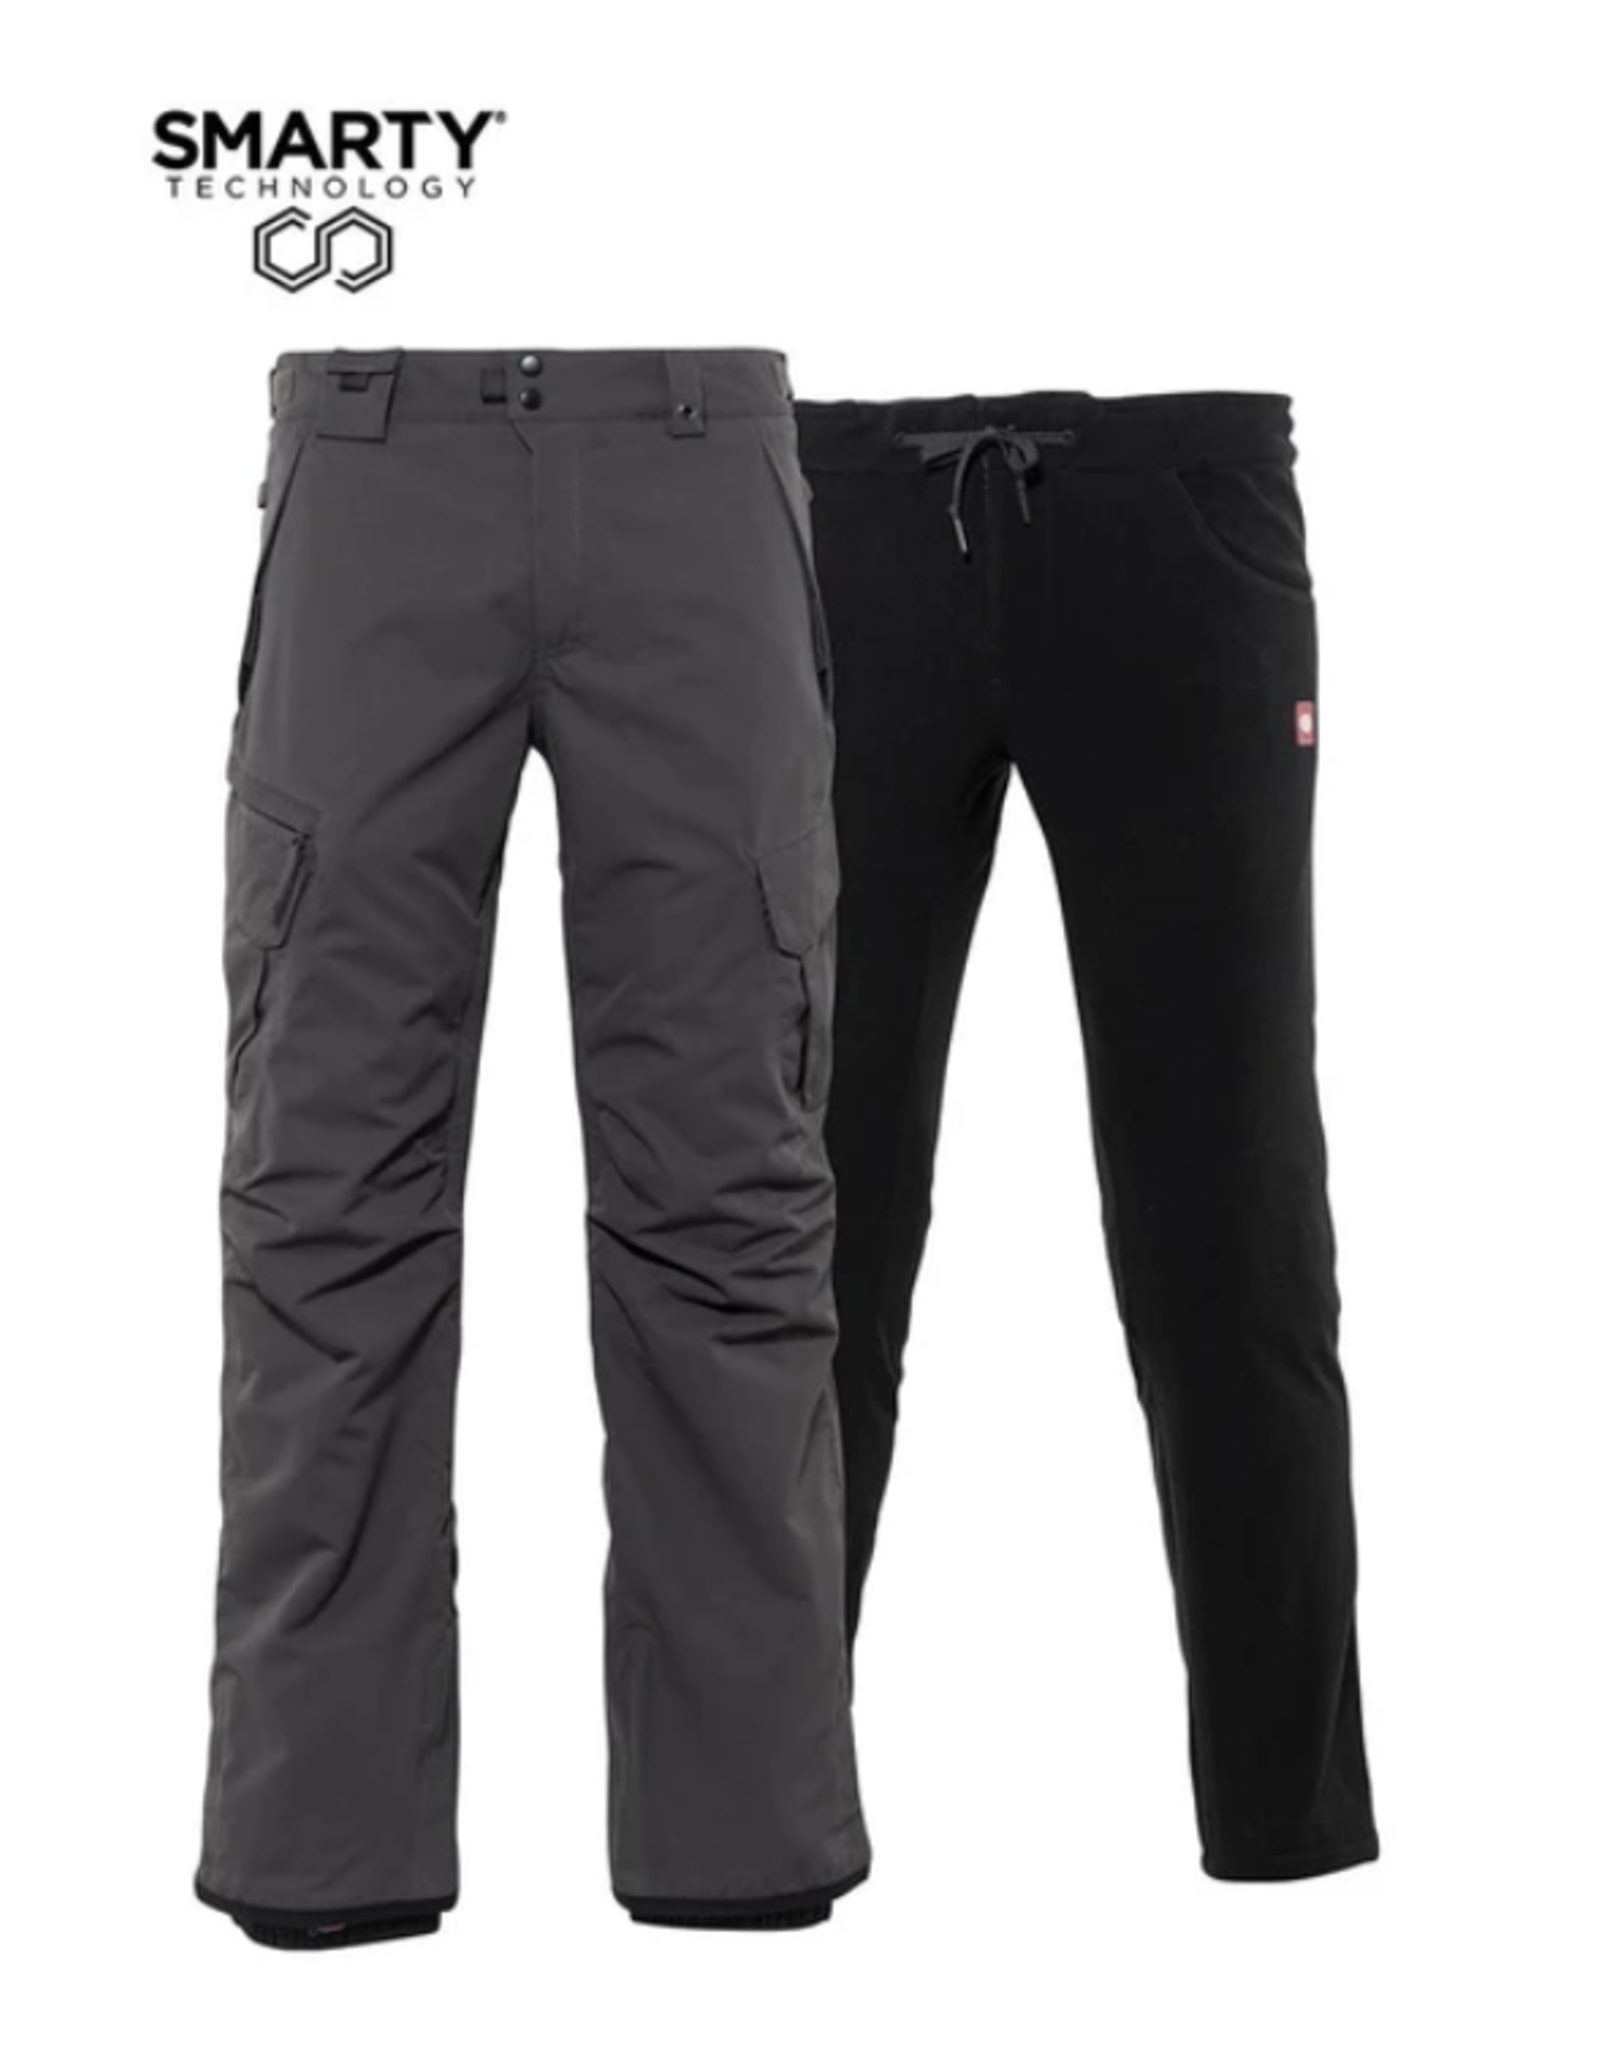 686 686 Mens SMARTY 3-in-1 Cargo Pant